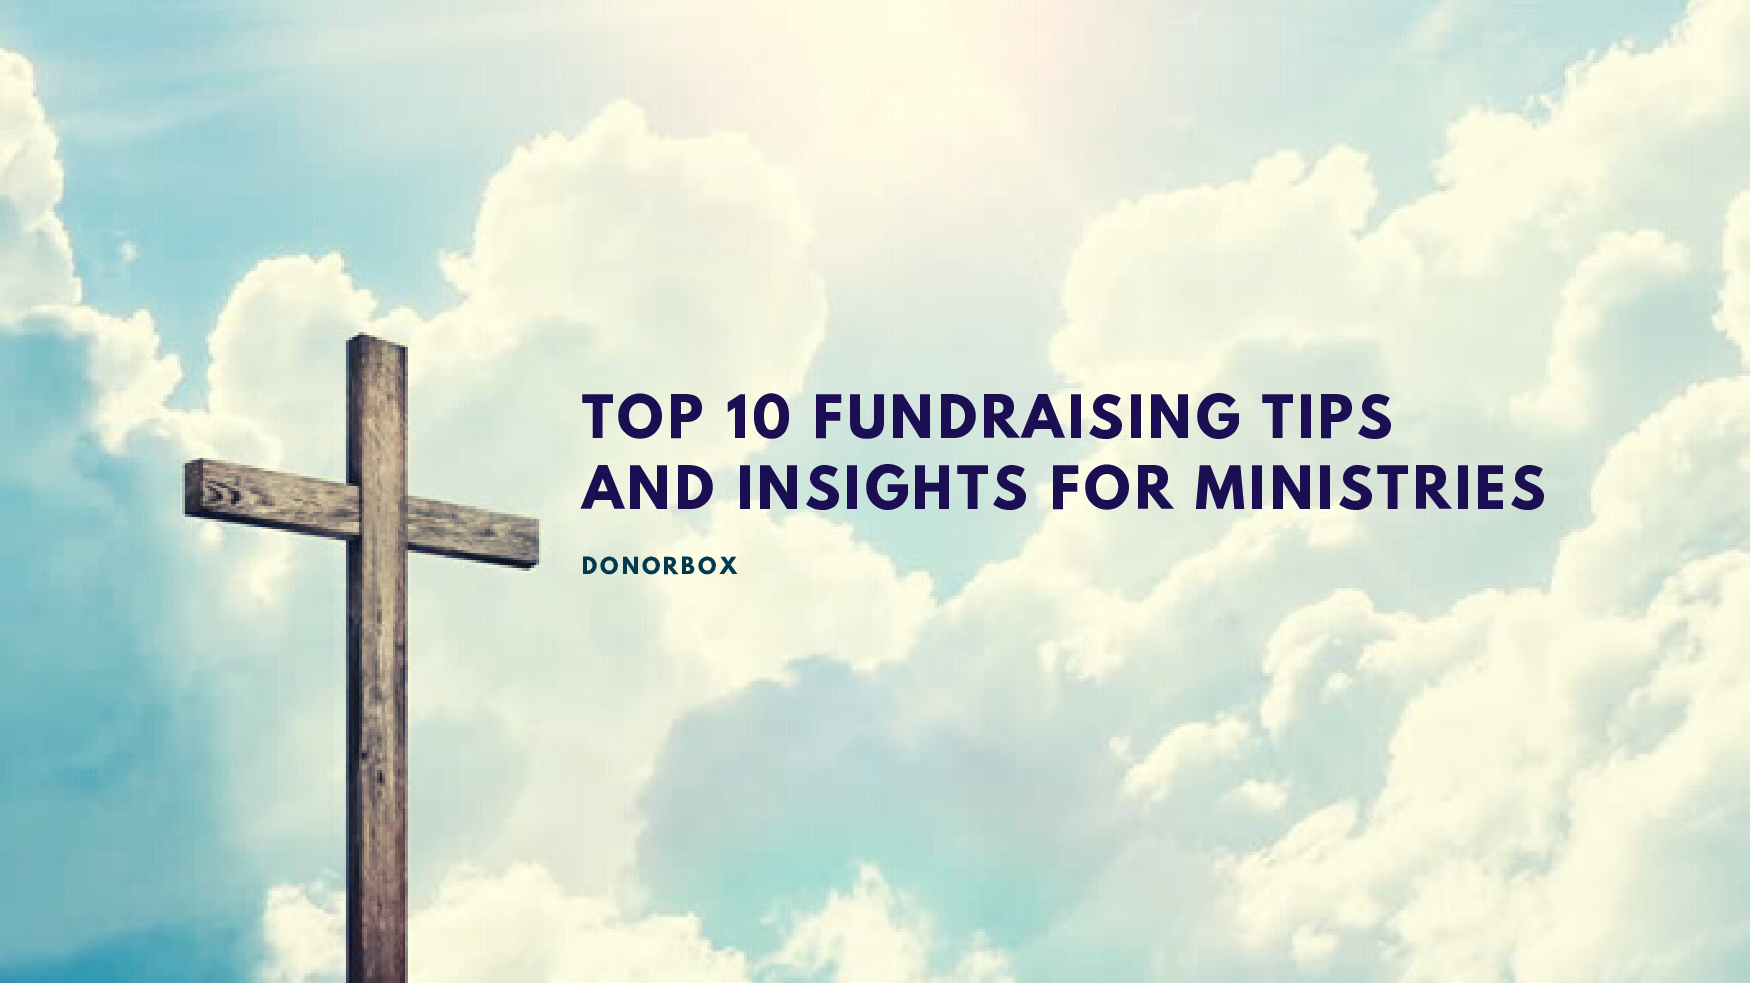 Top 10 Fundraising Tips and Insights for Ministries